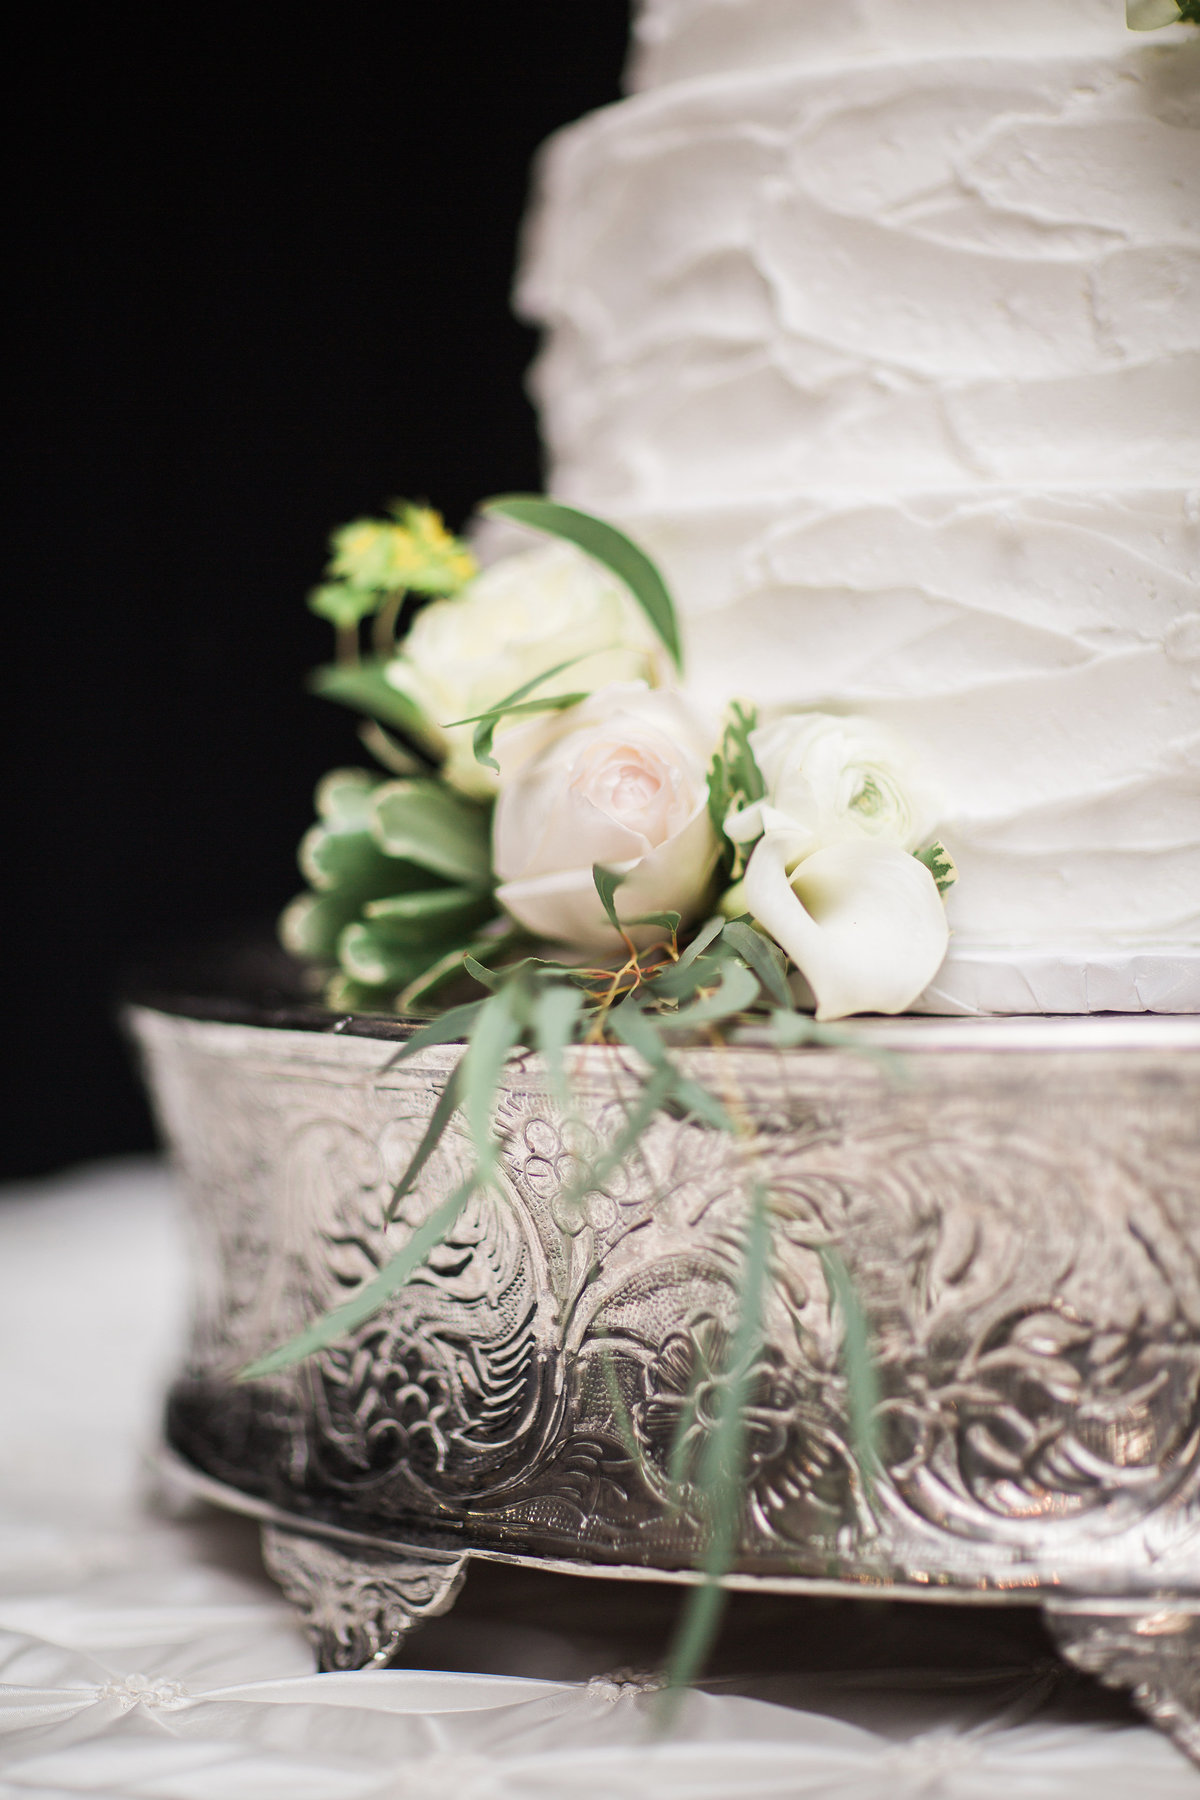 Ardmore Convention Center Wedding Cake